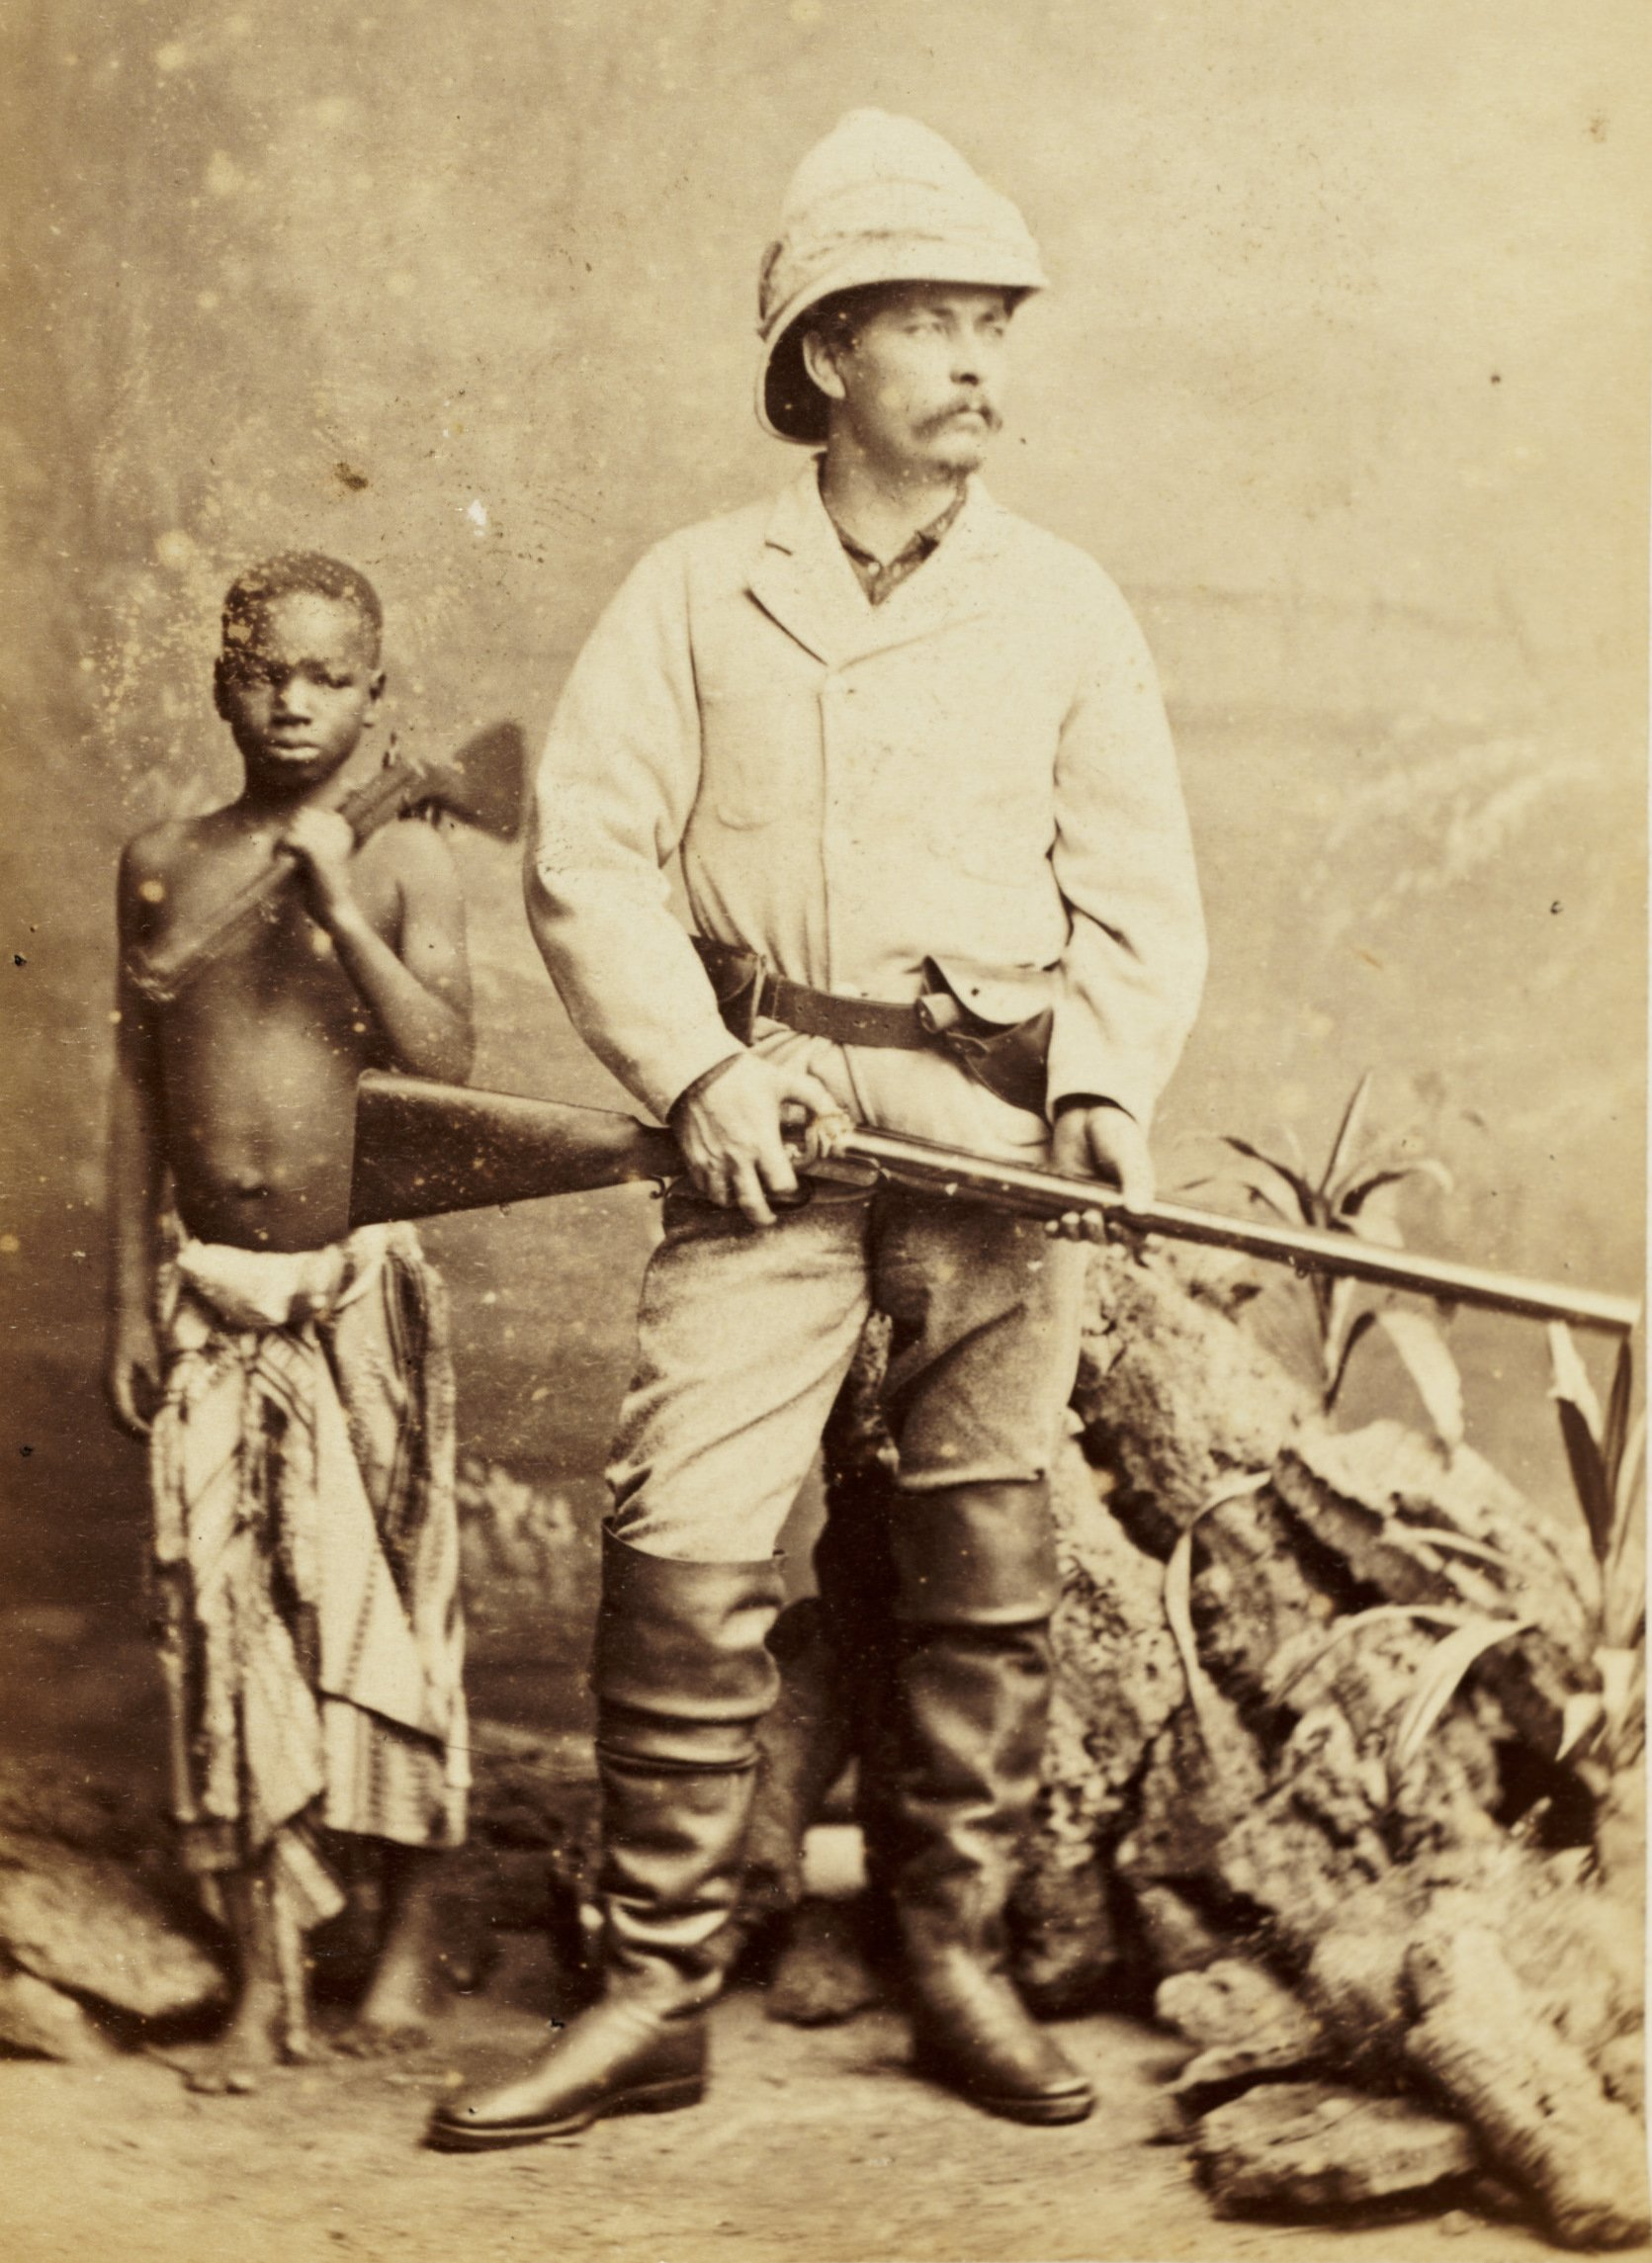 DAVID LIVINGSTONE - The African TouchThe African Touch